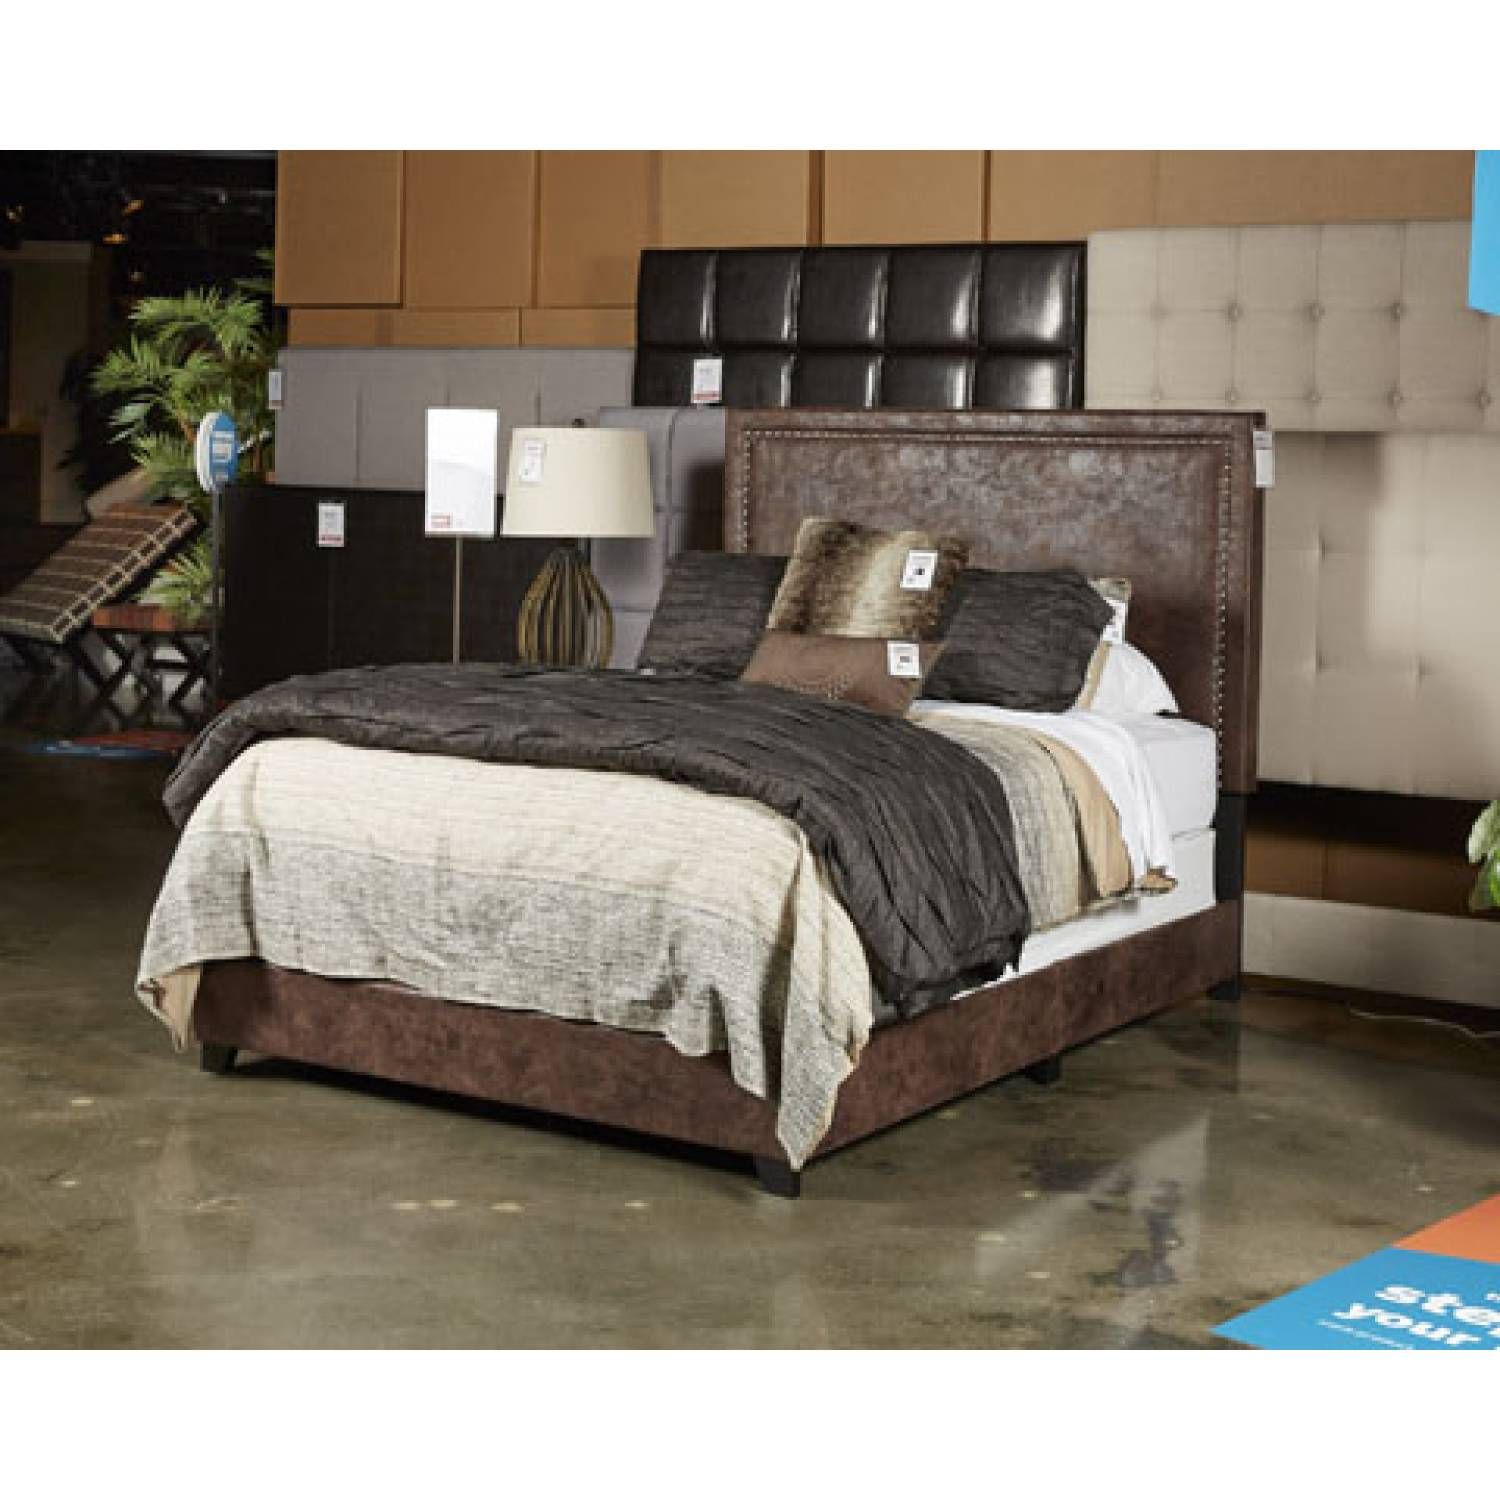 B130 Dolante King Upholstered Bed B130 282